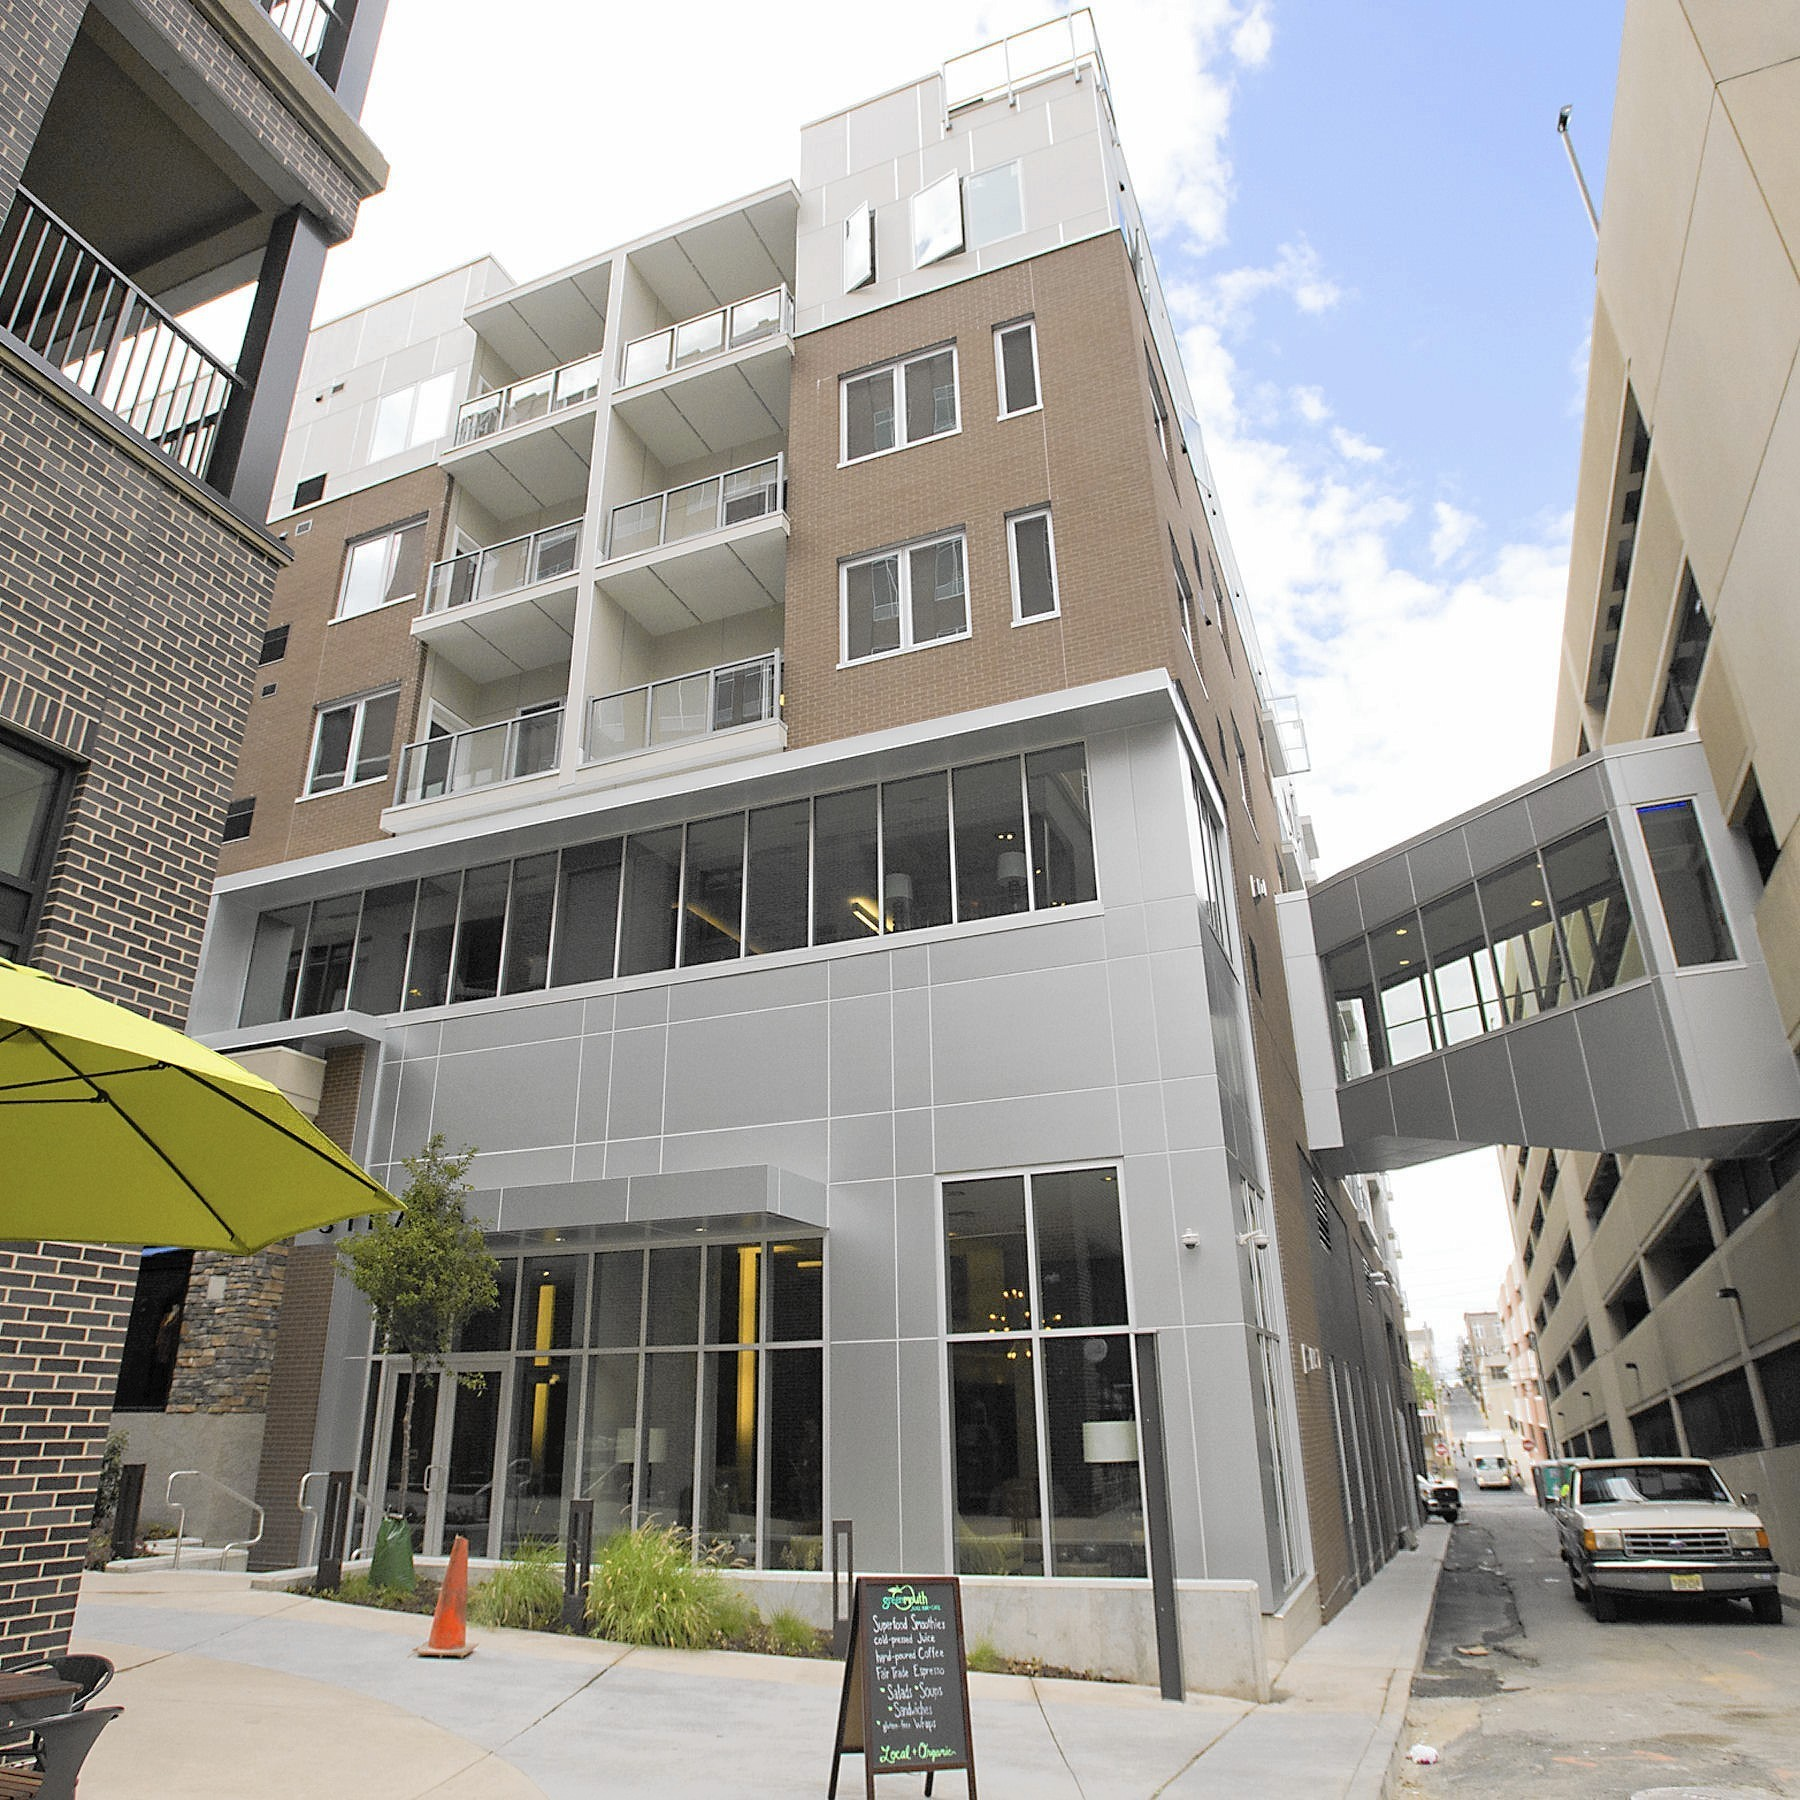 Center City Apartment Rentals: City Center Building More Downtown Allentown Apartments